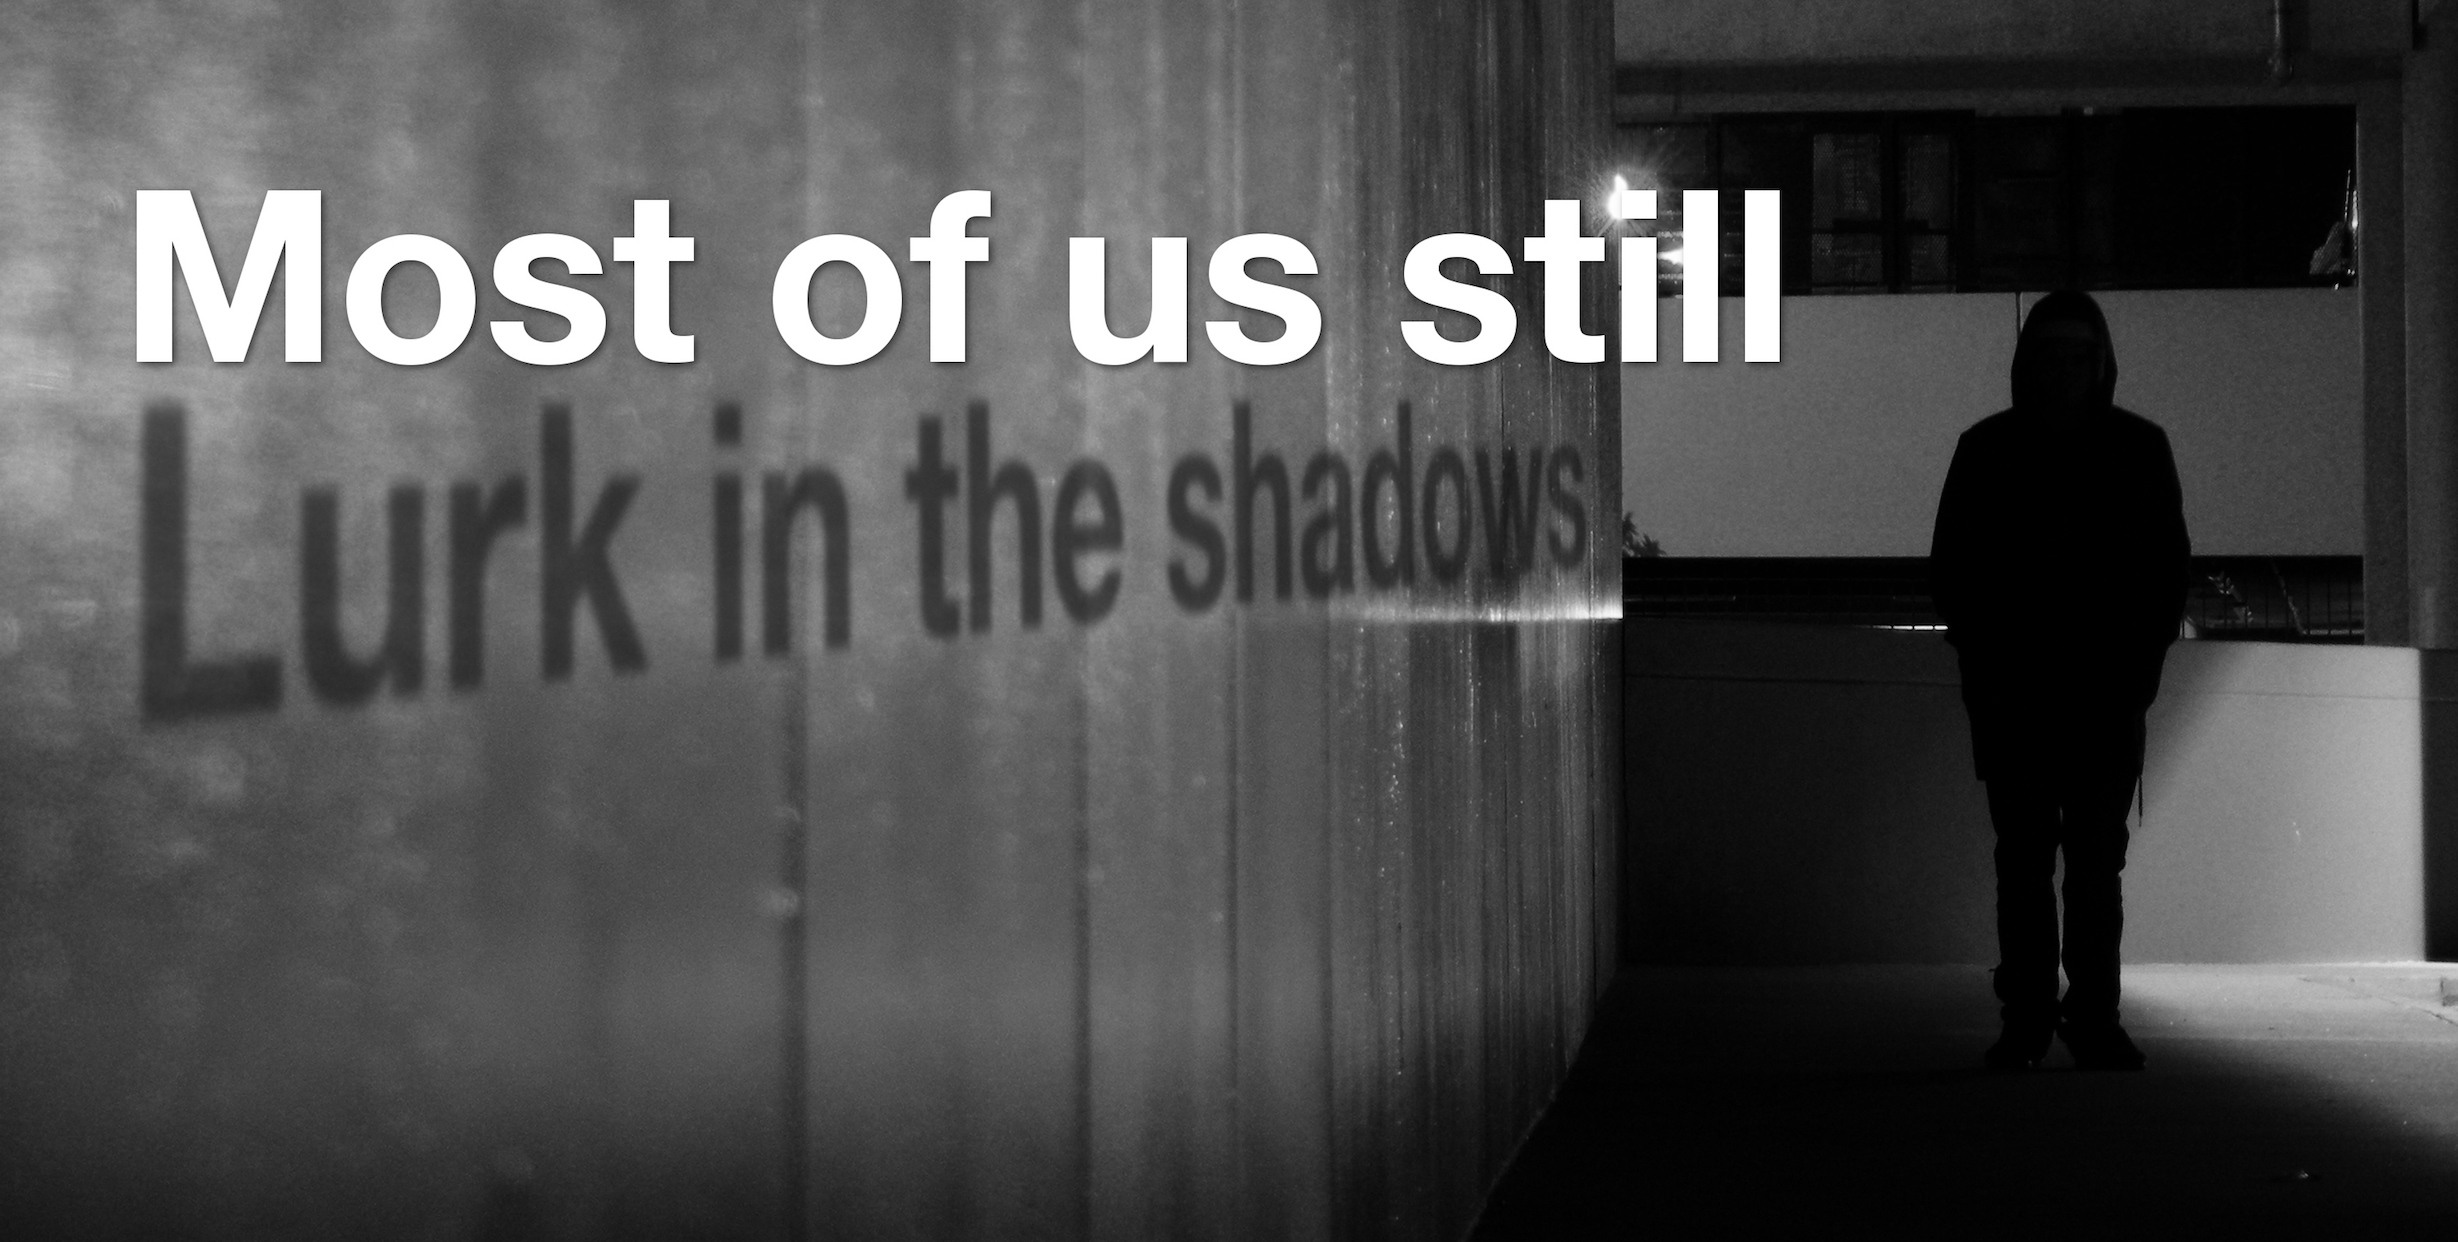 Free yourself from the shadows